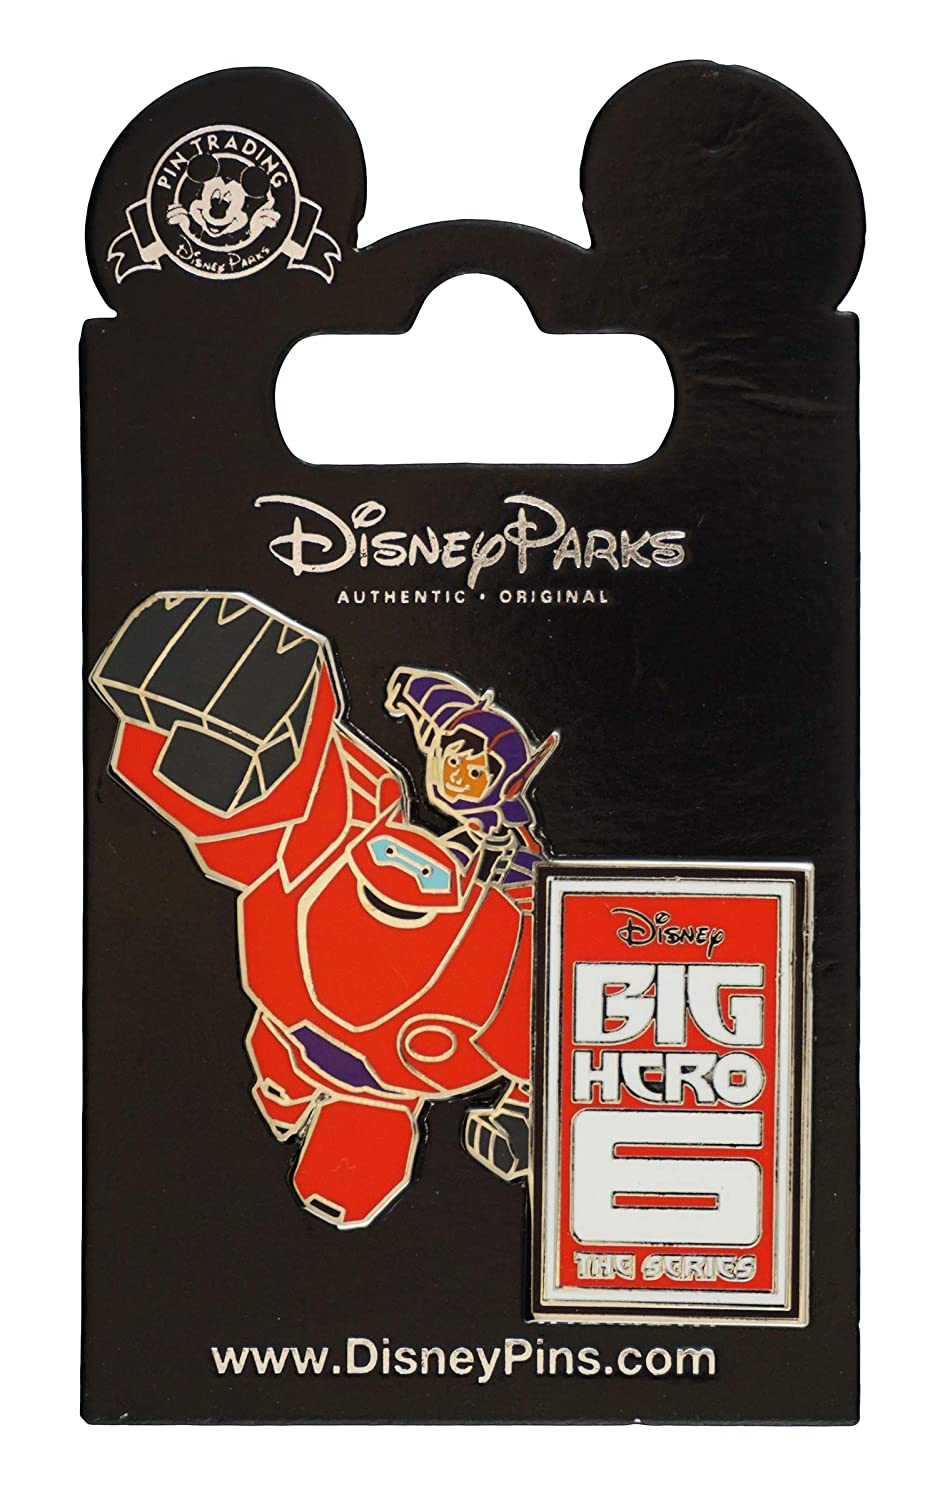 Disney Pin - Big Hero 6 - The Series - Armored Hiro and Baymax